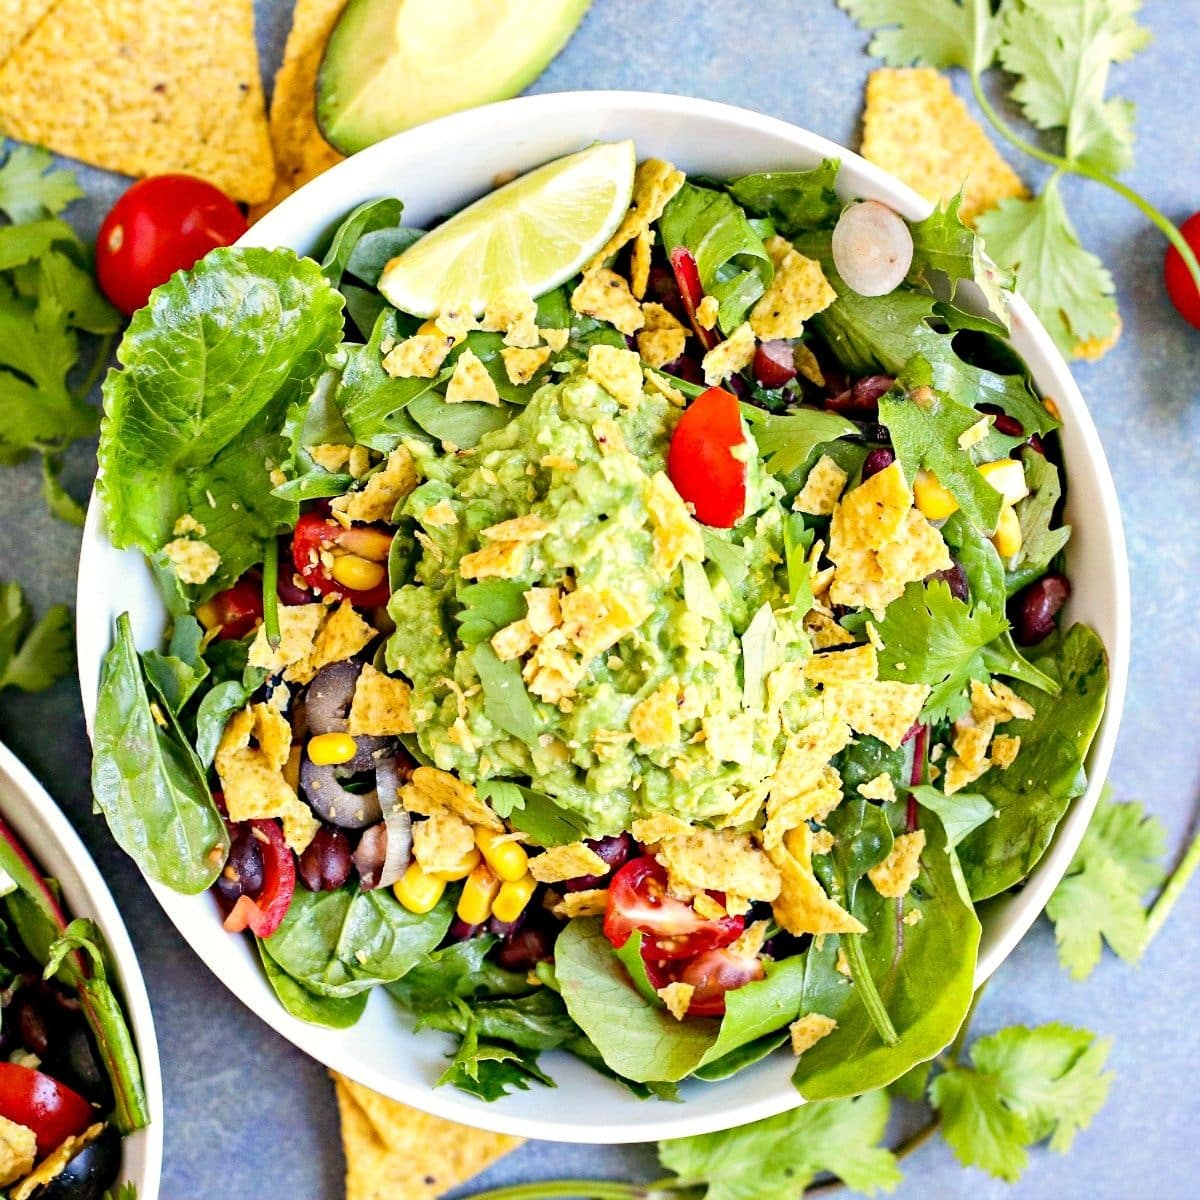 Bowl of salad topped with guacamole and crushed tortilla chips